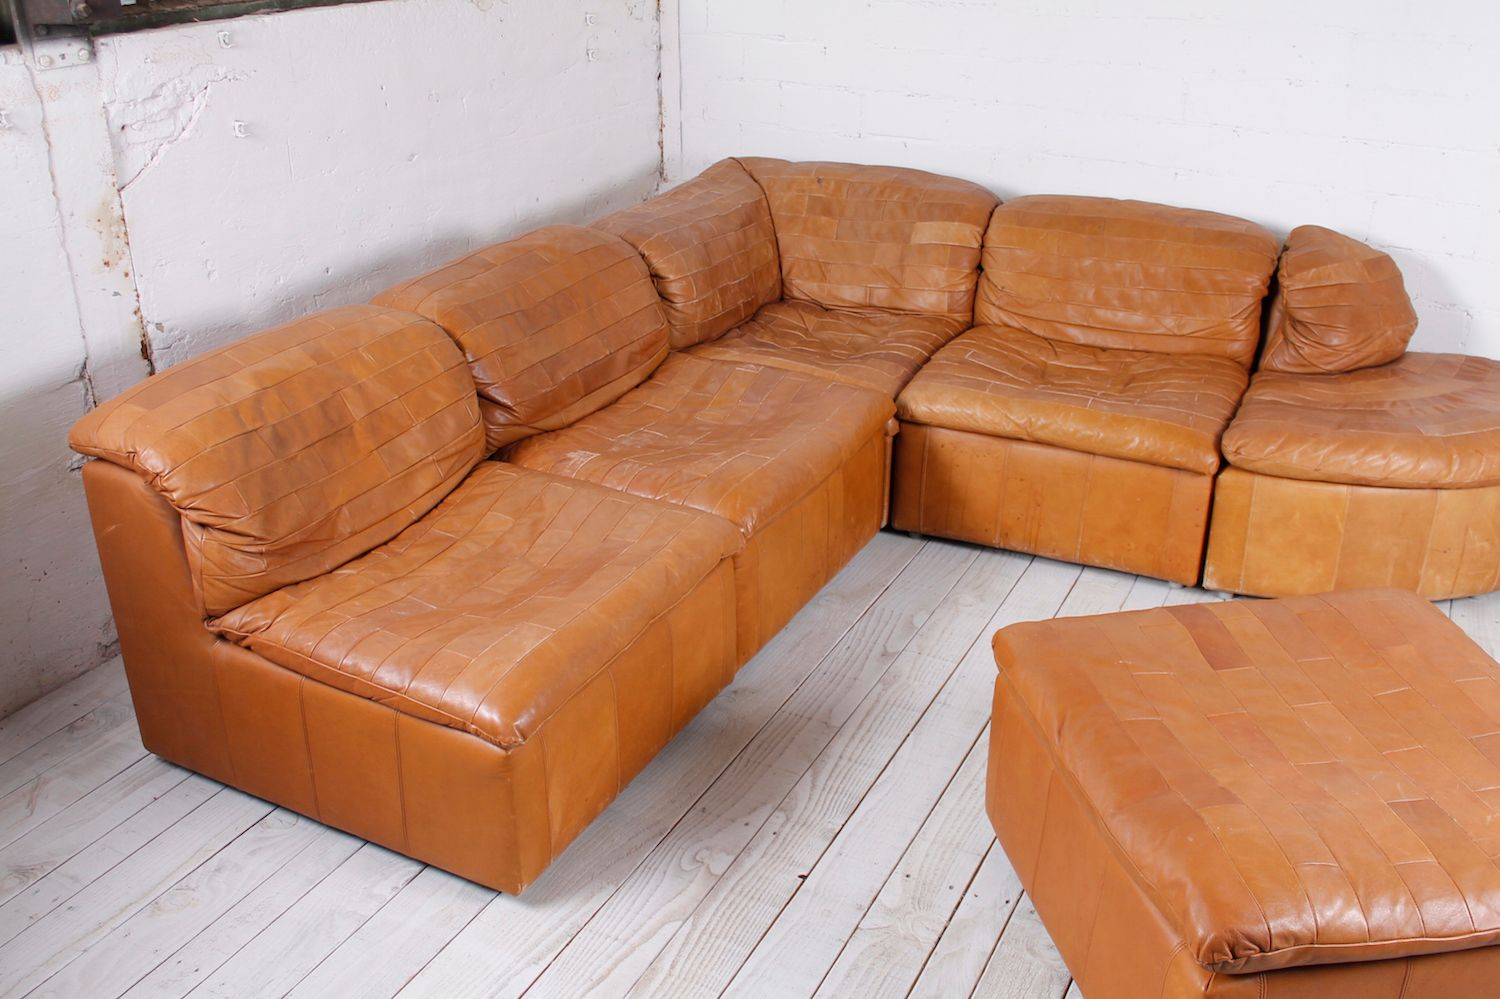 Modular Patchwork Sofa In Leather 1970s For Sale At Pamono